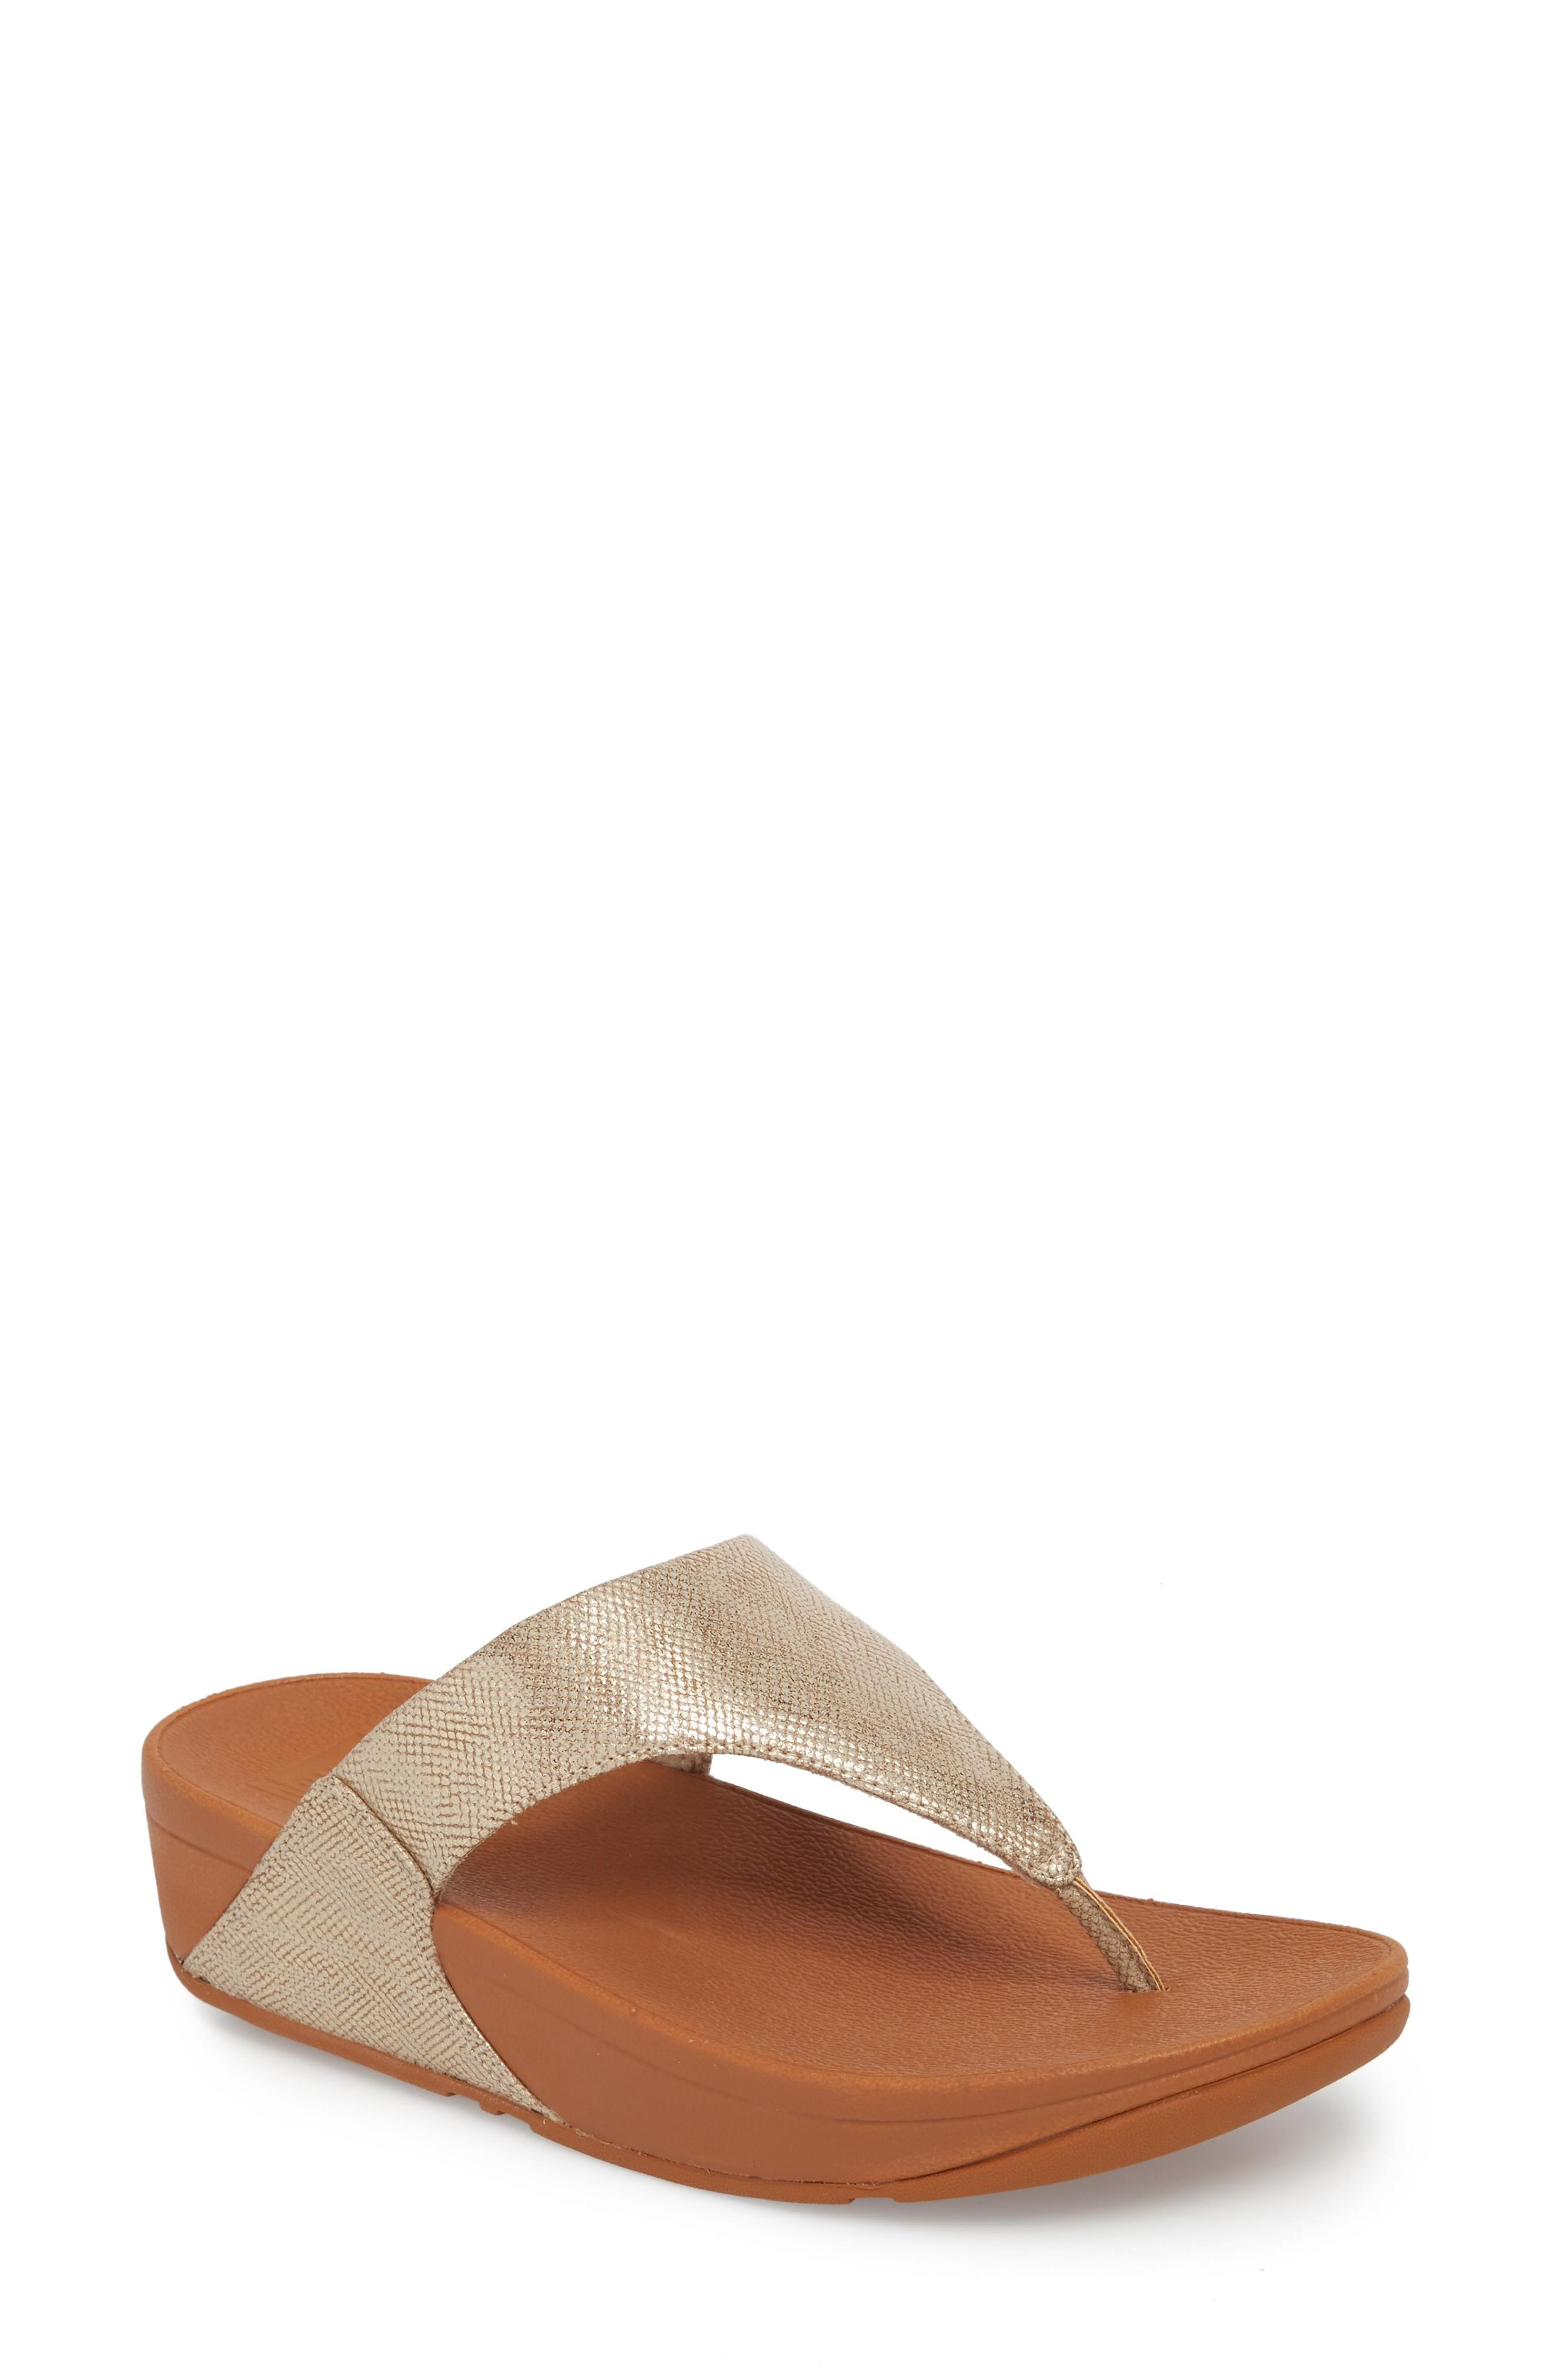 Fitflop Lulu Thong Sandal In Gold